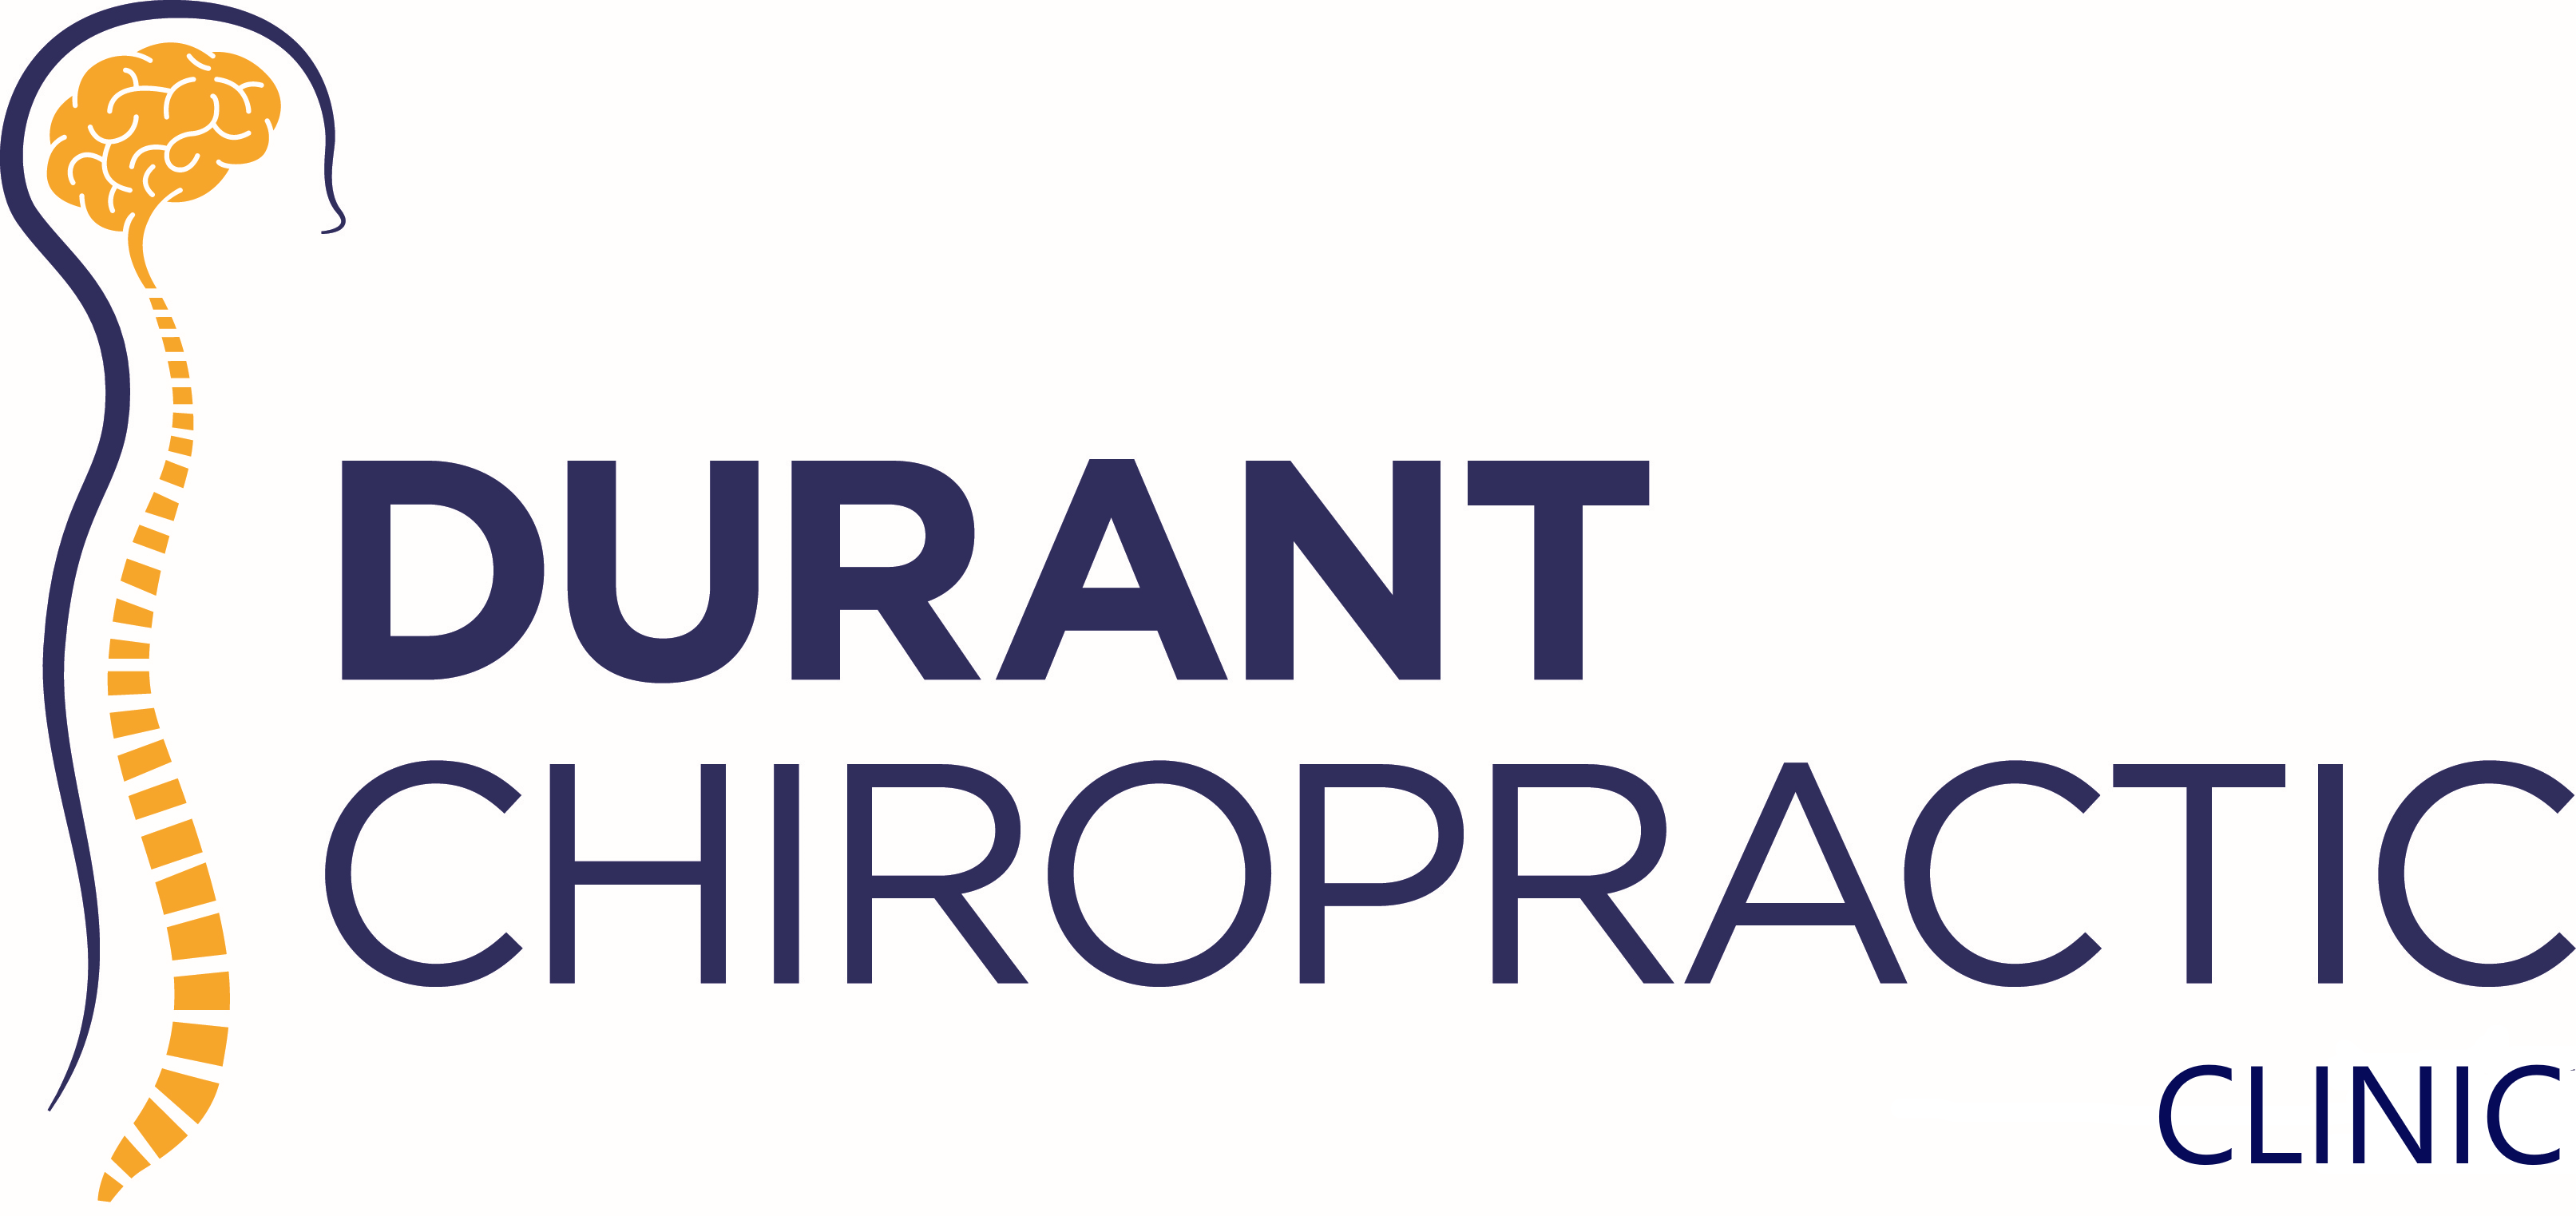 Durant Chiropractic Clinic